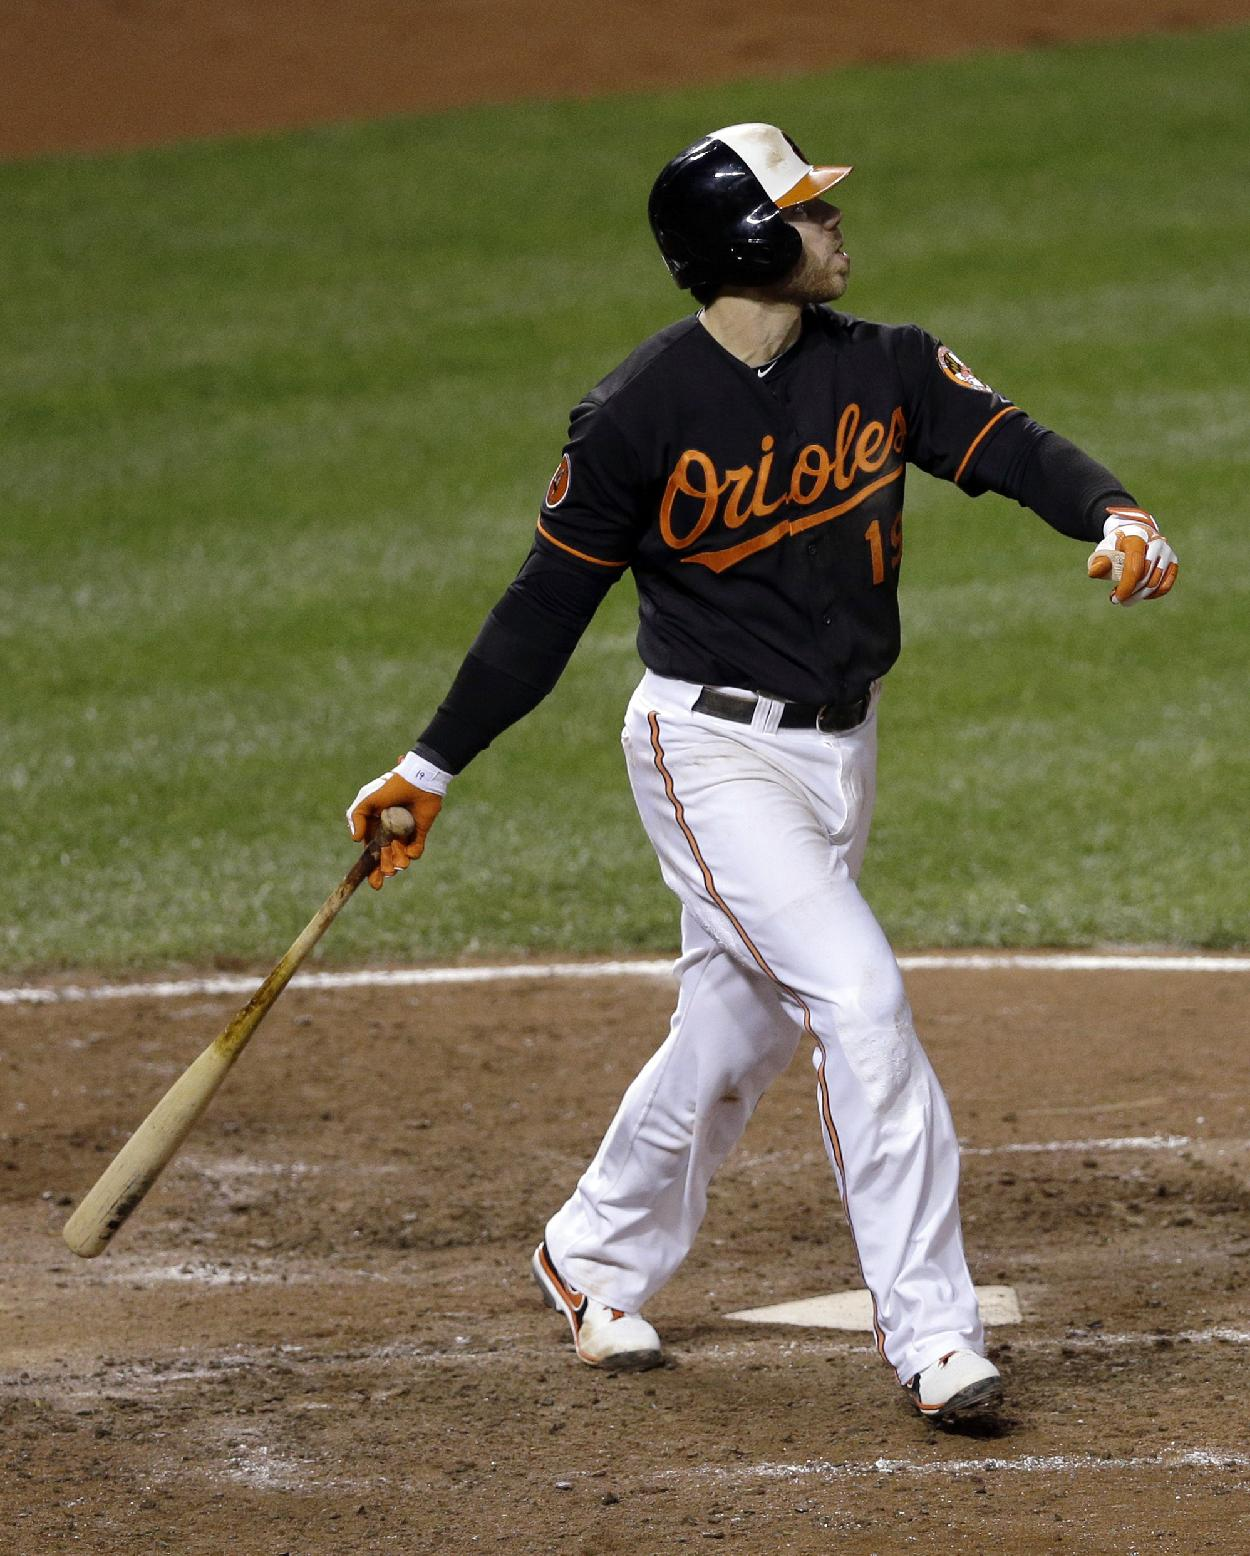 Orioles reach agreement with Davis, 4 others